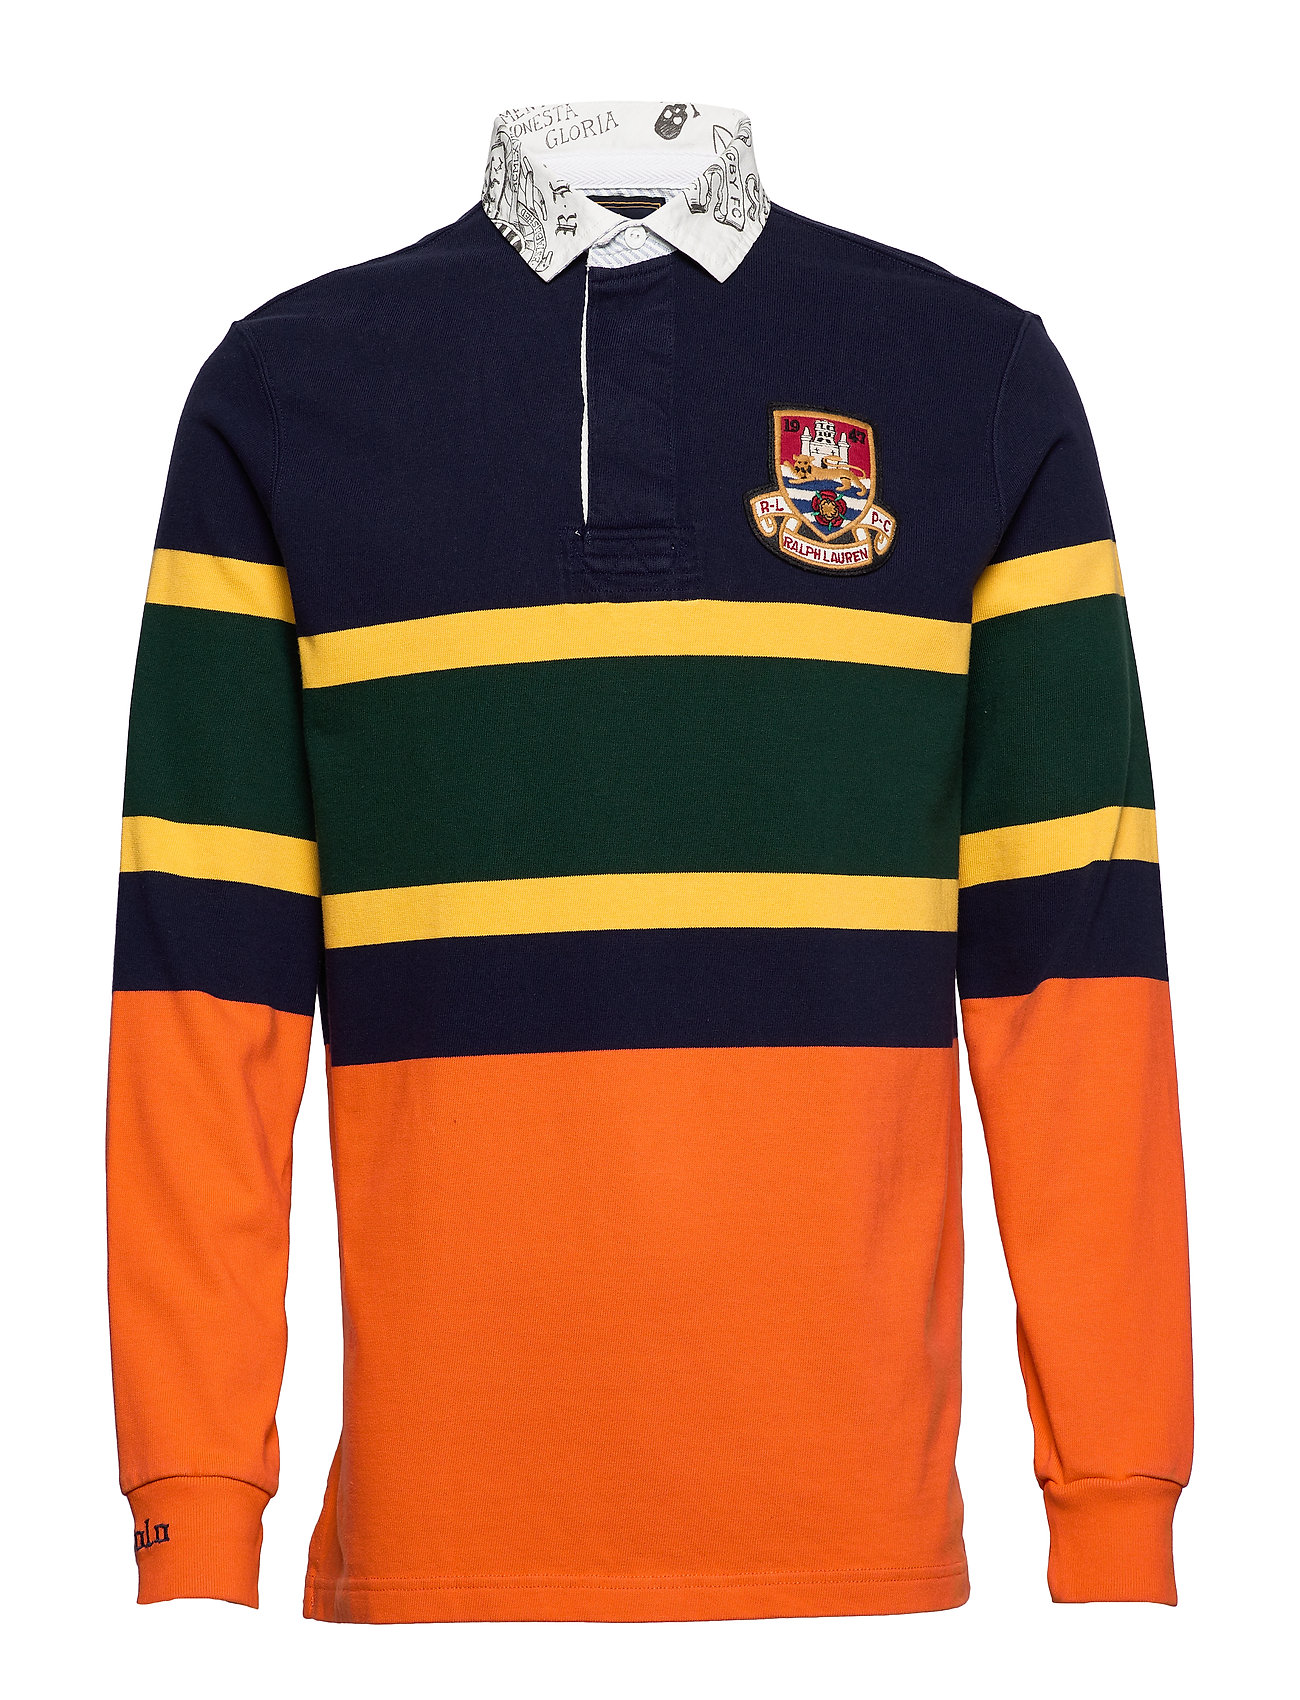 Polo Ralph Lauren LSRUGBYM5-LONG SLEEVE-KNIT - CRUISE NAVY MULTI